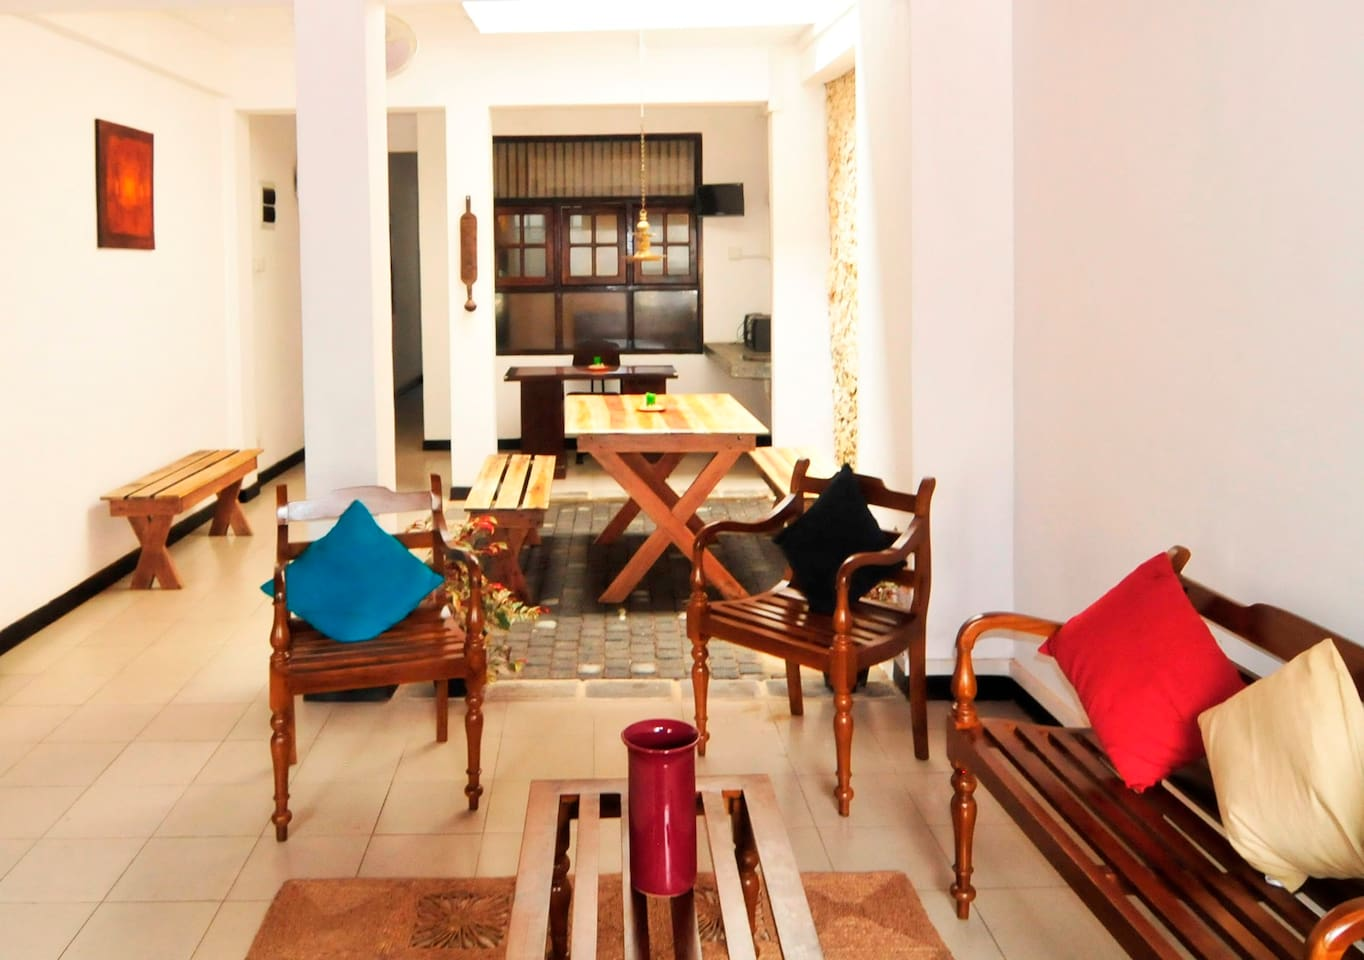 Lounge area to relax in the company of friends/family